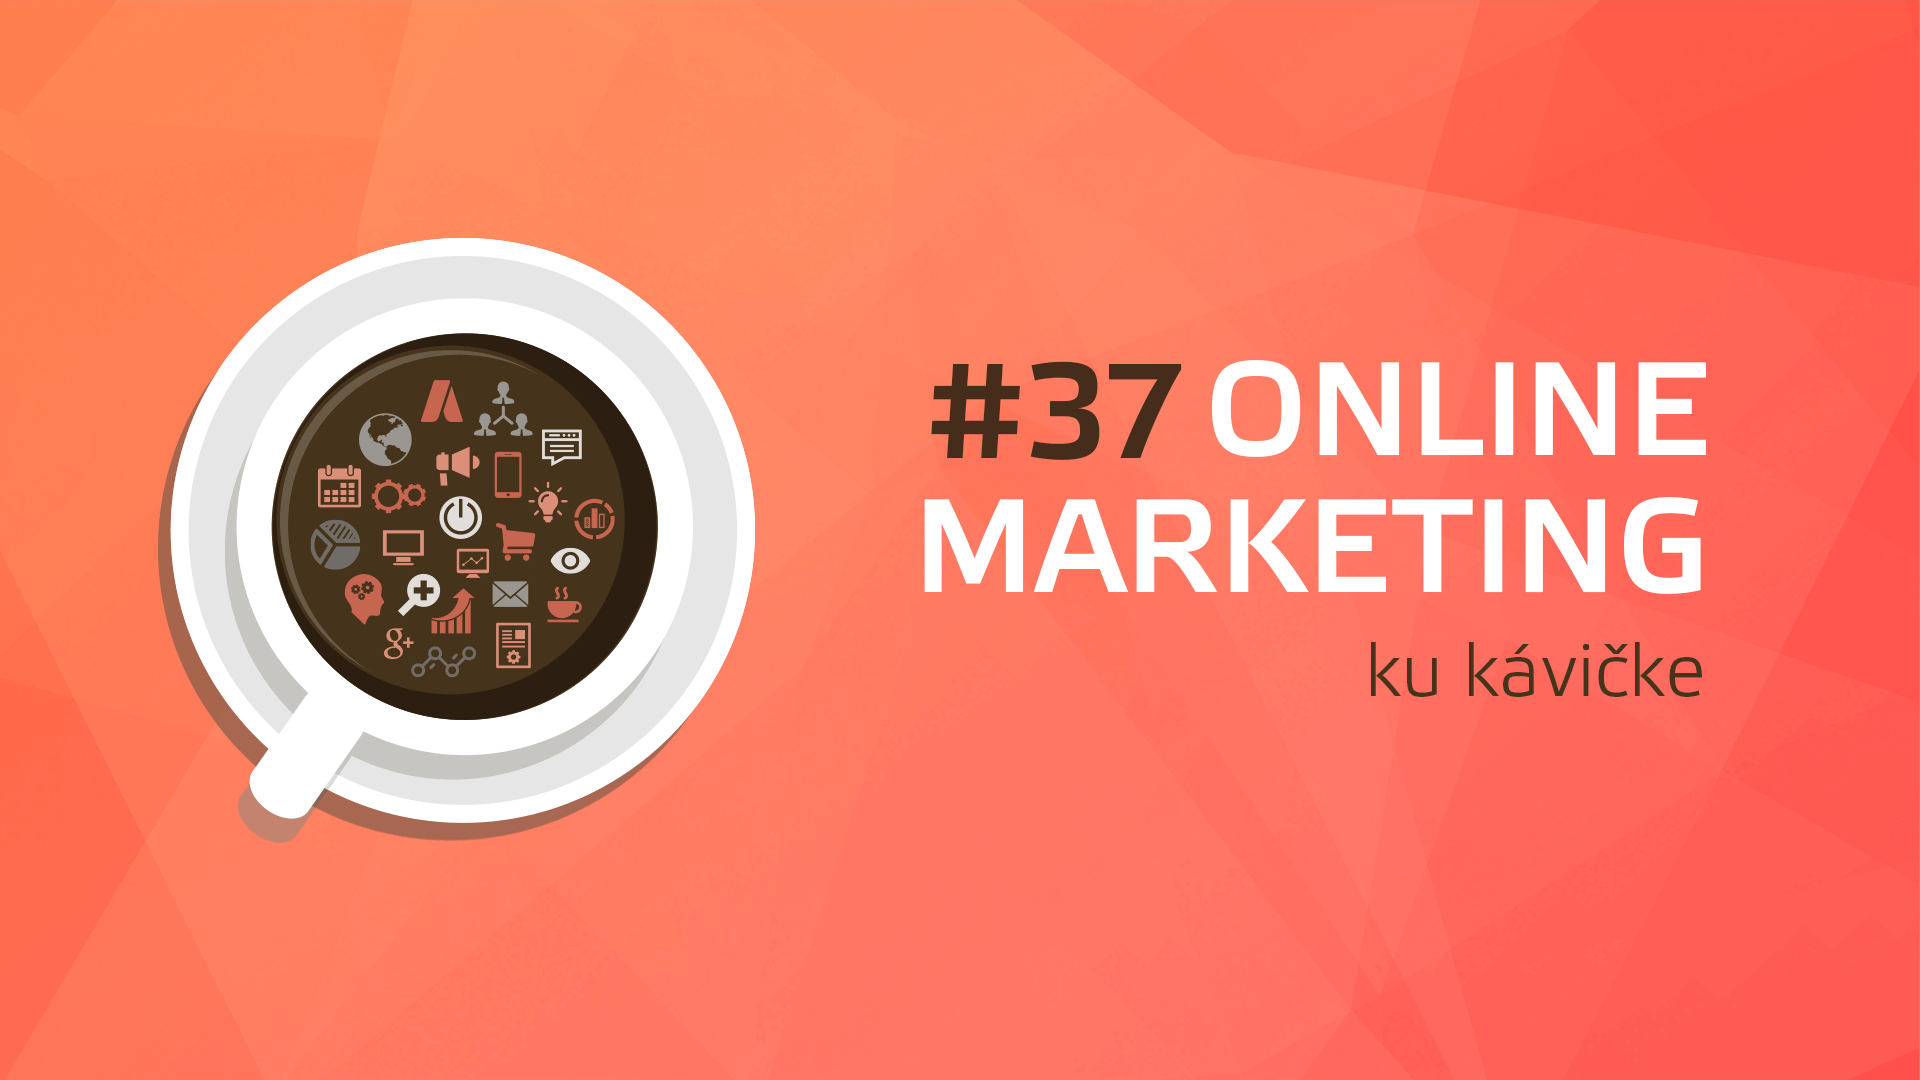 online marketing ku kavicke 37